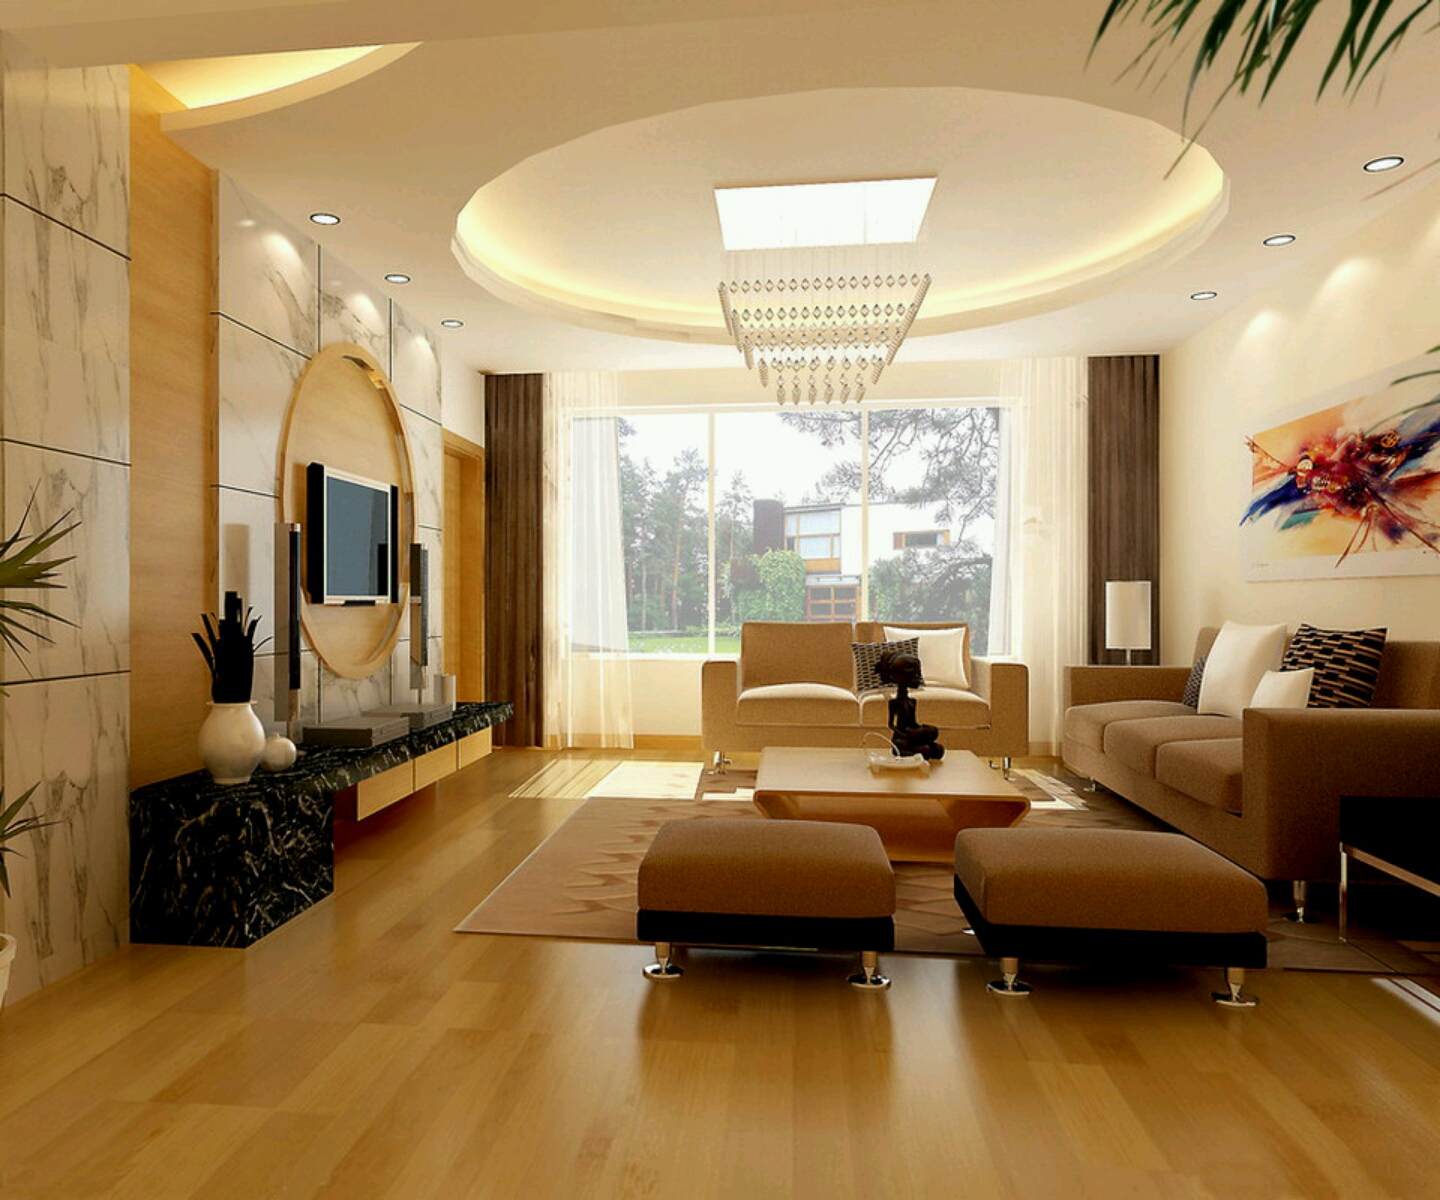 Modern interior decoration living rooms ceiling designs for Home design ideas for living room